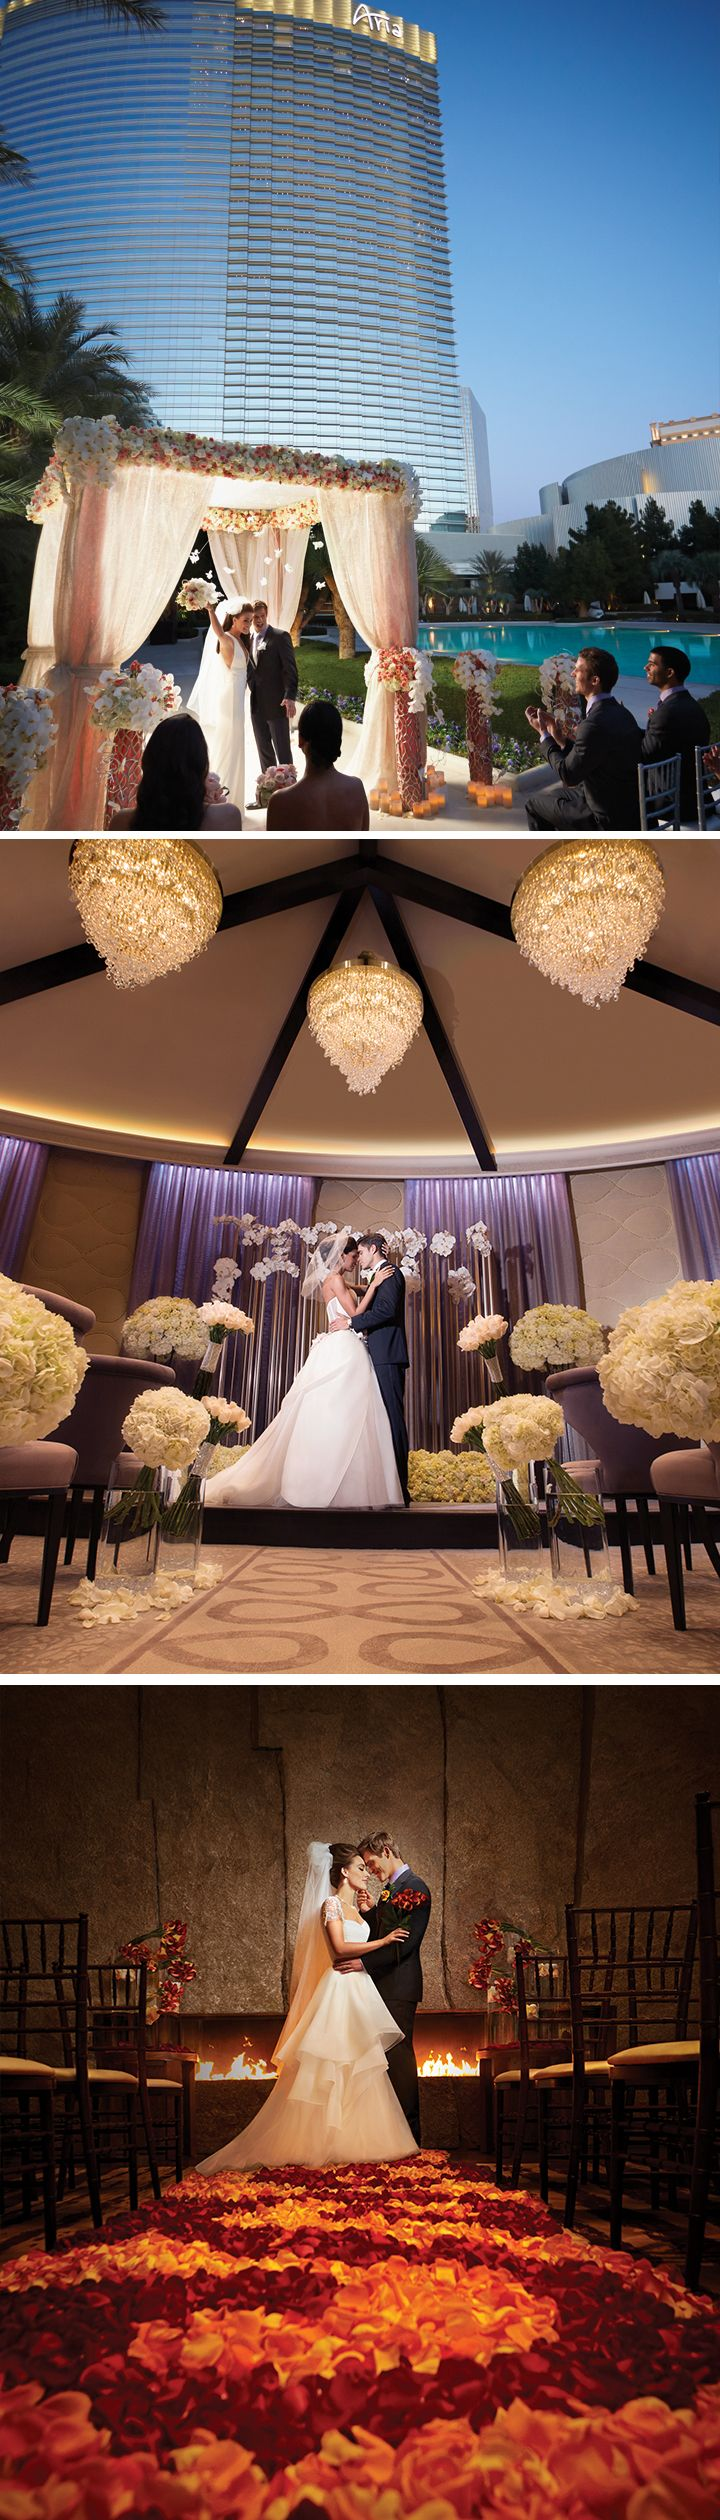 When you think Las Vegas Wedding, do you think Elvis? Drive thru? Sequins? ARIA offers you truly remarkable venues that rival any destination wedding. From pool-side nuptials to vow renewals in in our Fireside Lounge, these locations are anything but cliché. And, if your family and friends can't join you, we will live-stream the entire ceremony.